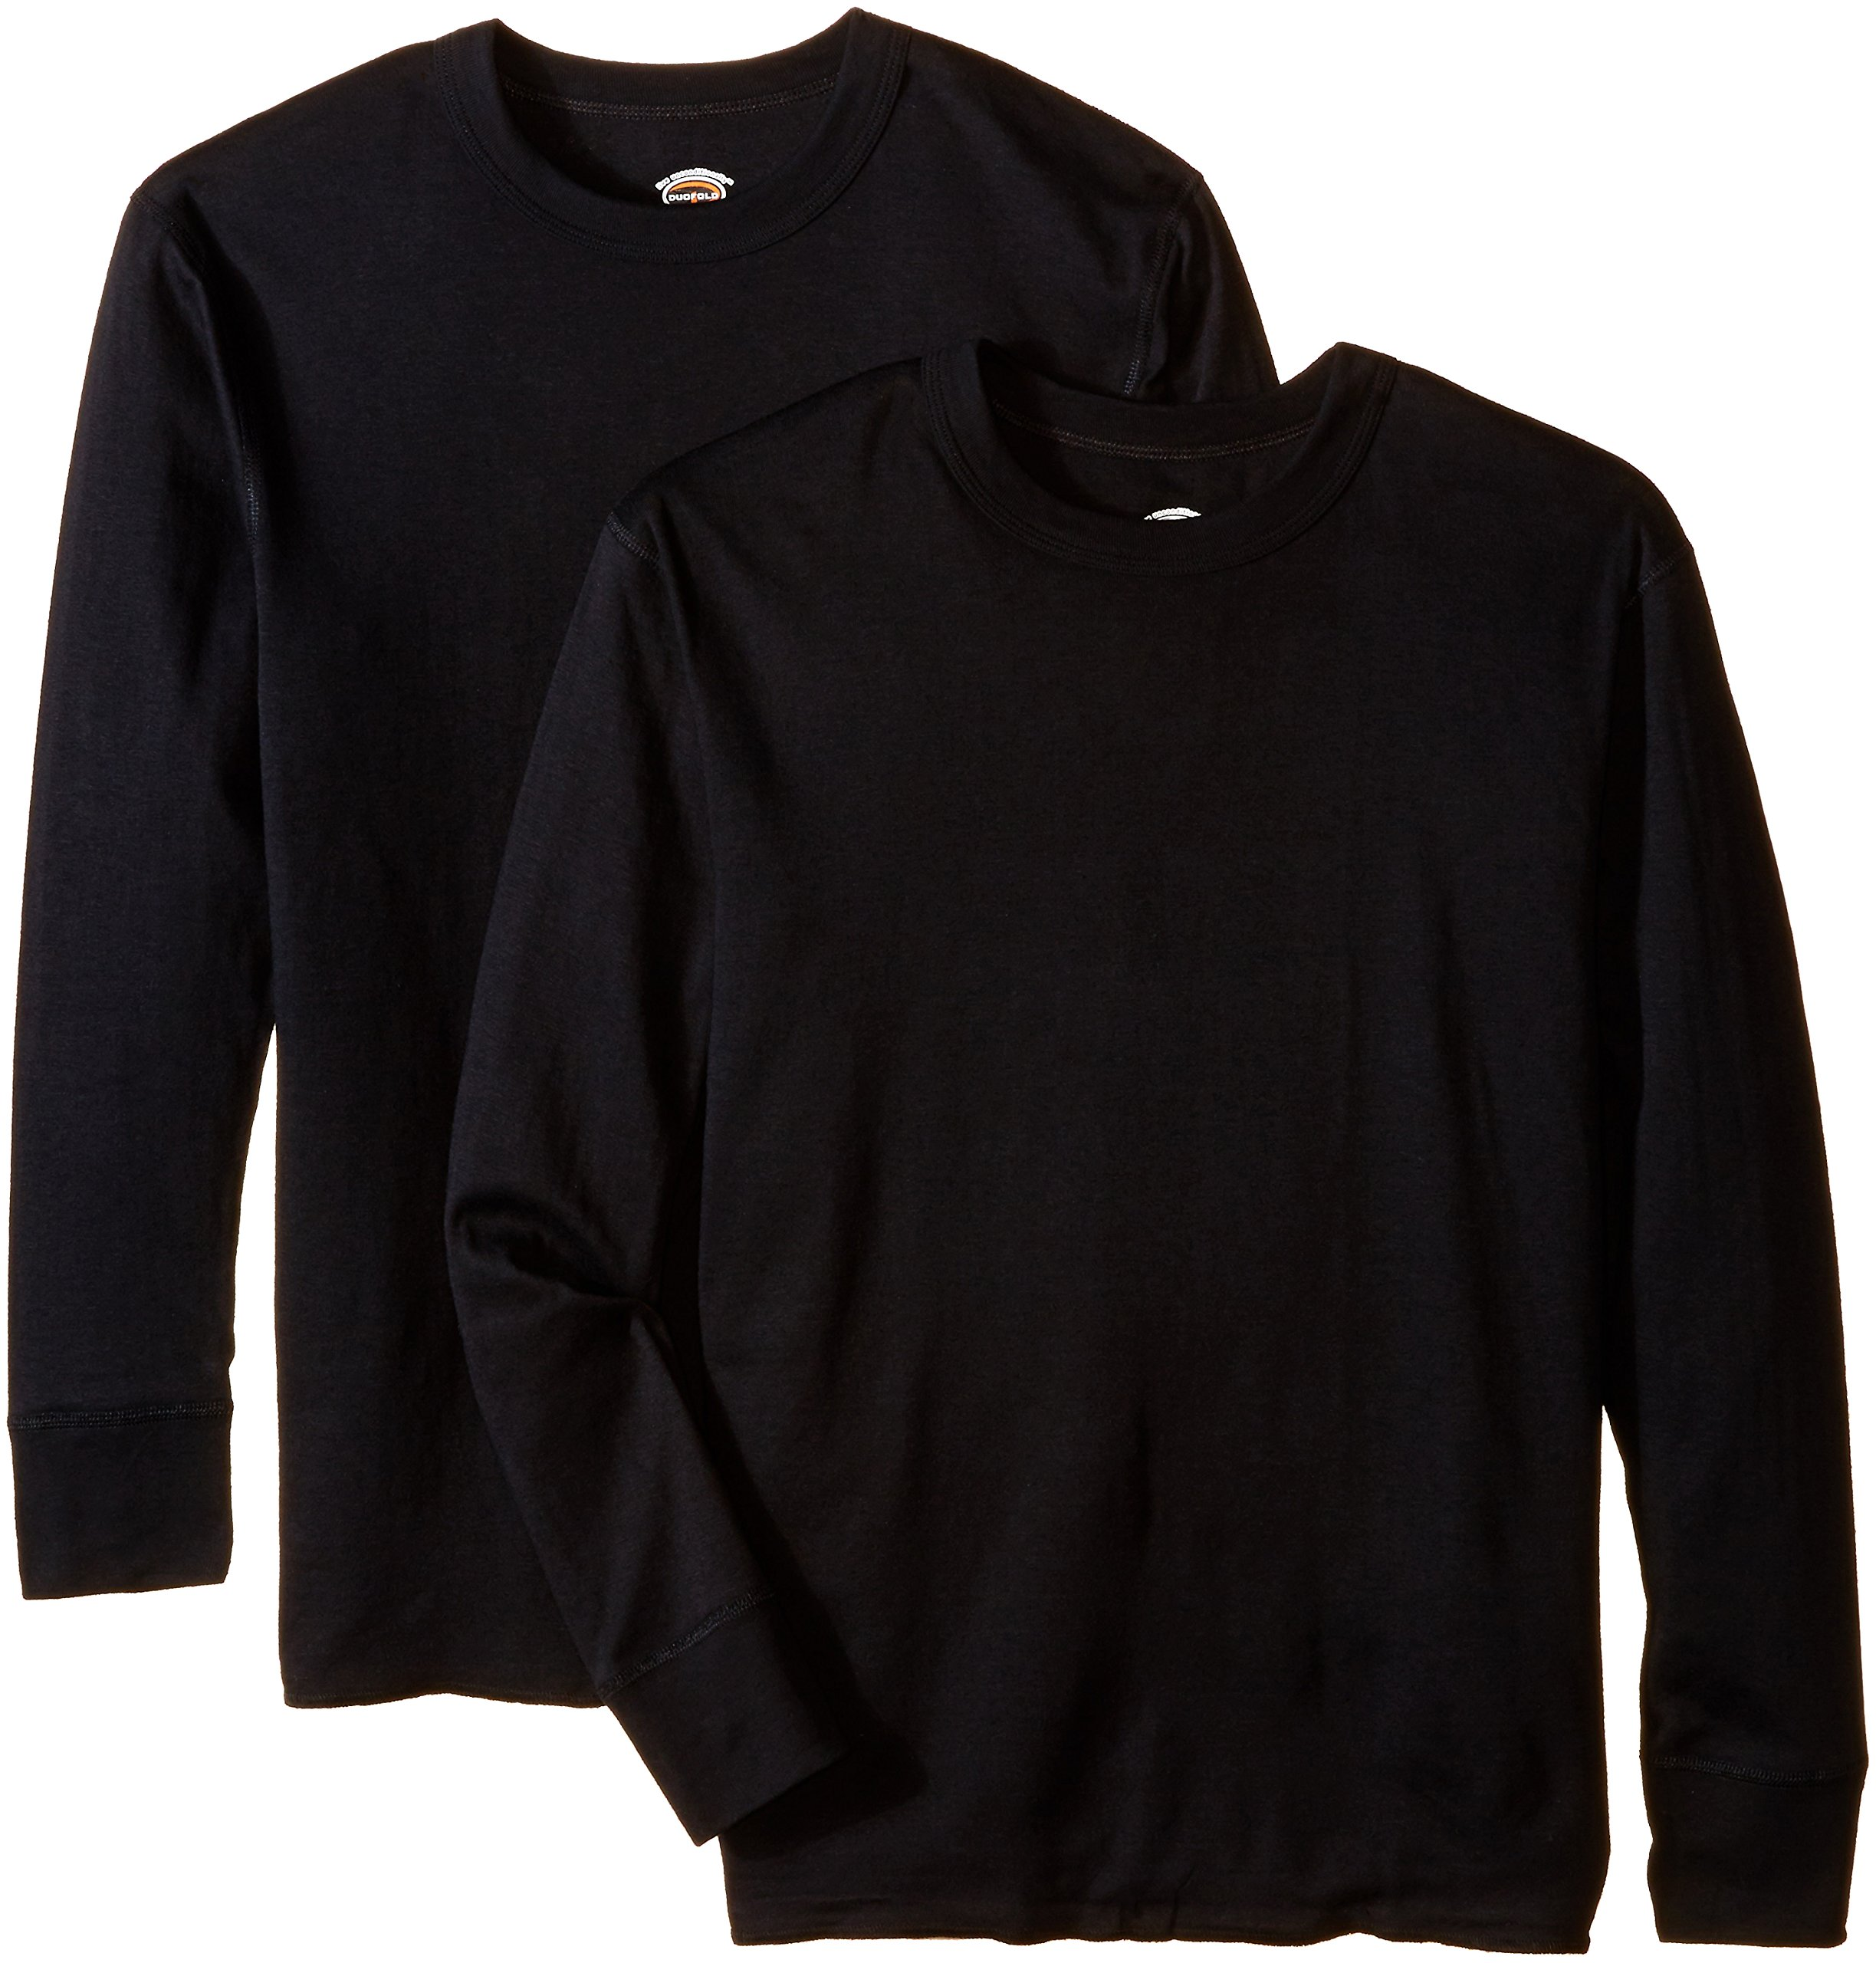 Duofold Men's Mid Weight Wicking Thermal Shirt (Pack of 2), Black, Large